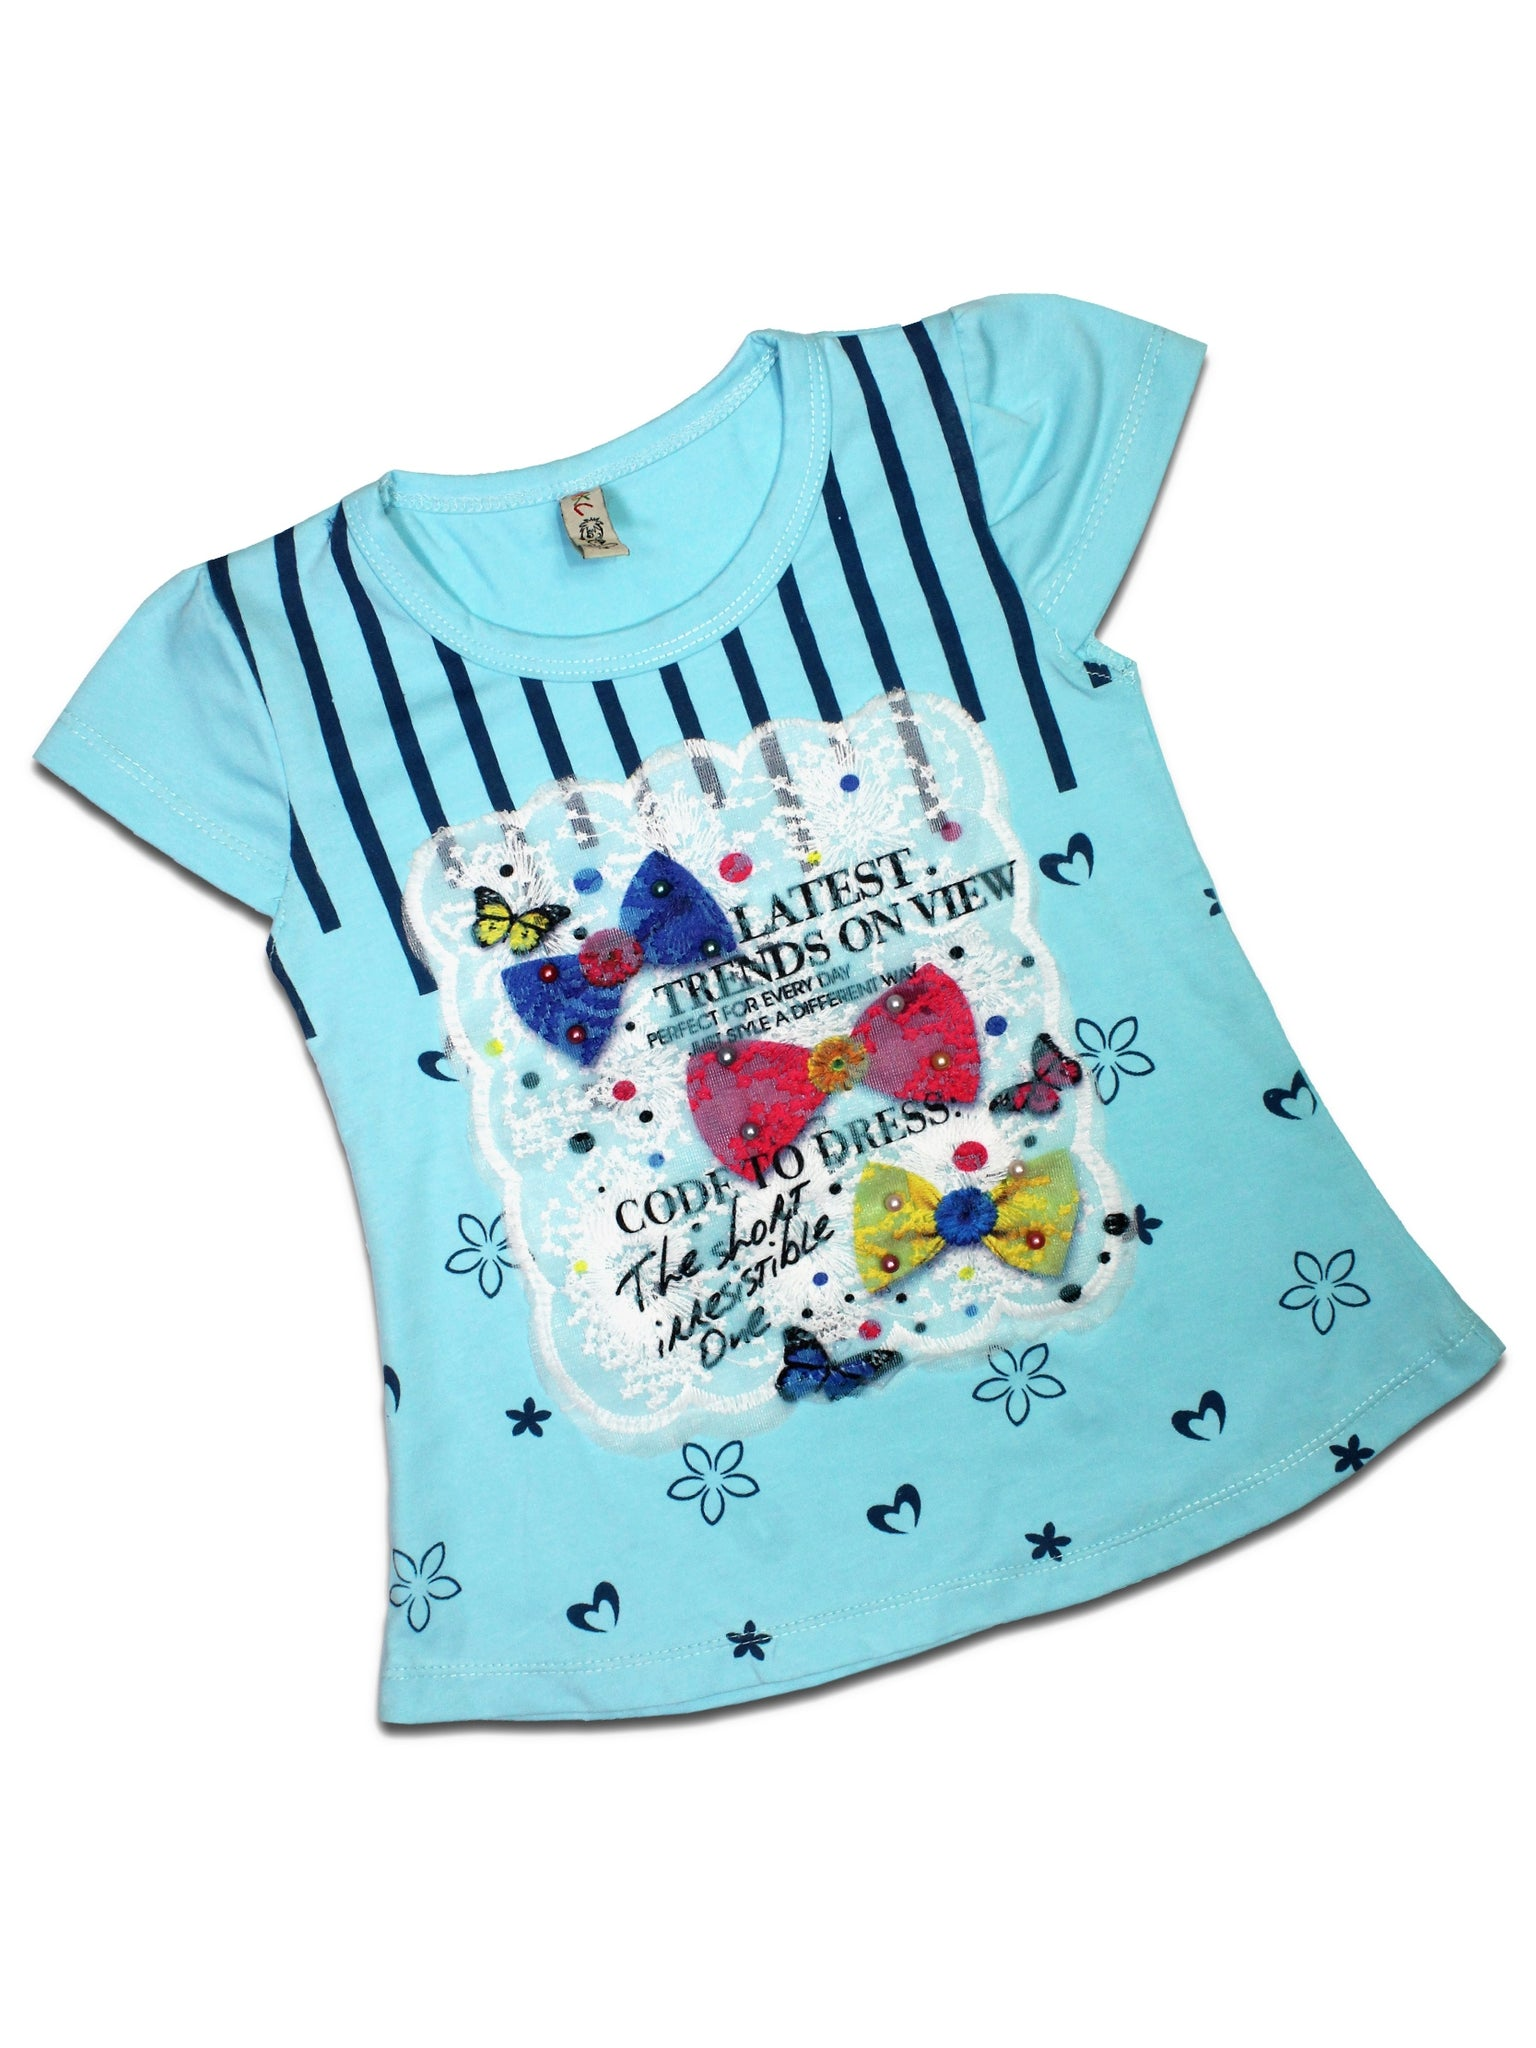 AK3 2.5Yrs - 8Yrs T-Shirt For Girls Net Embroidery Bow Light Blue